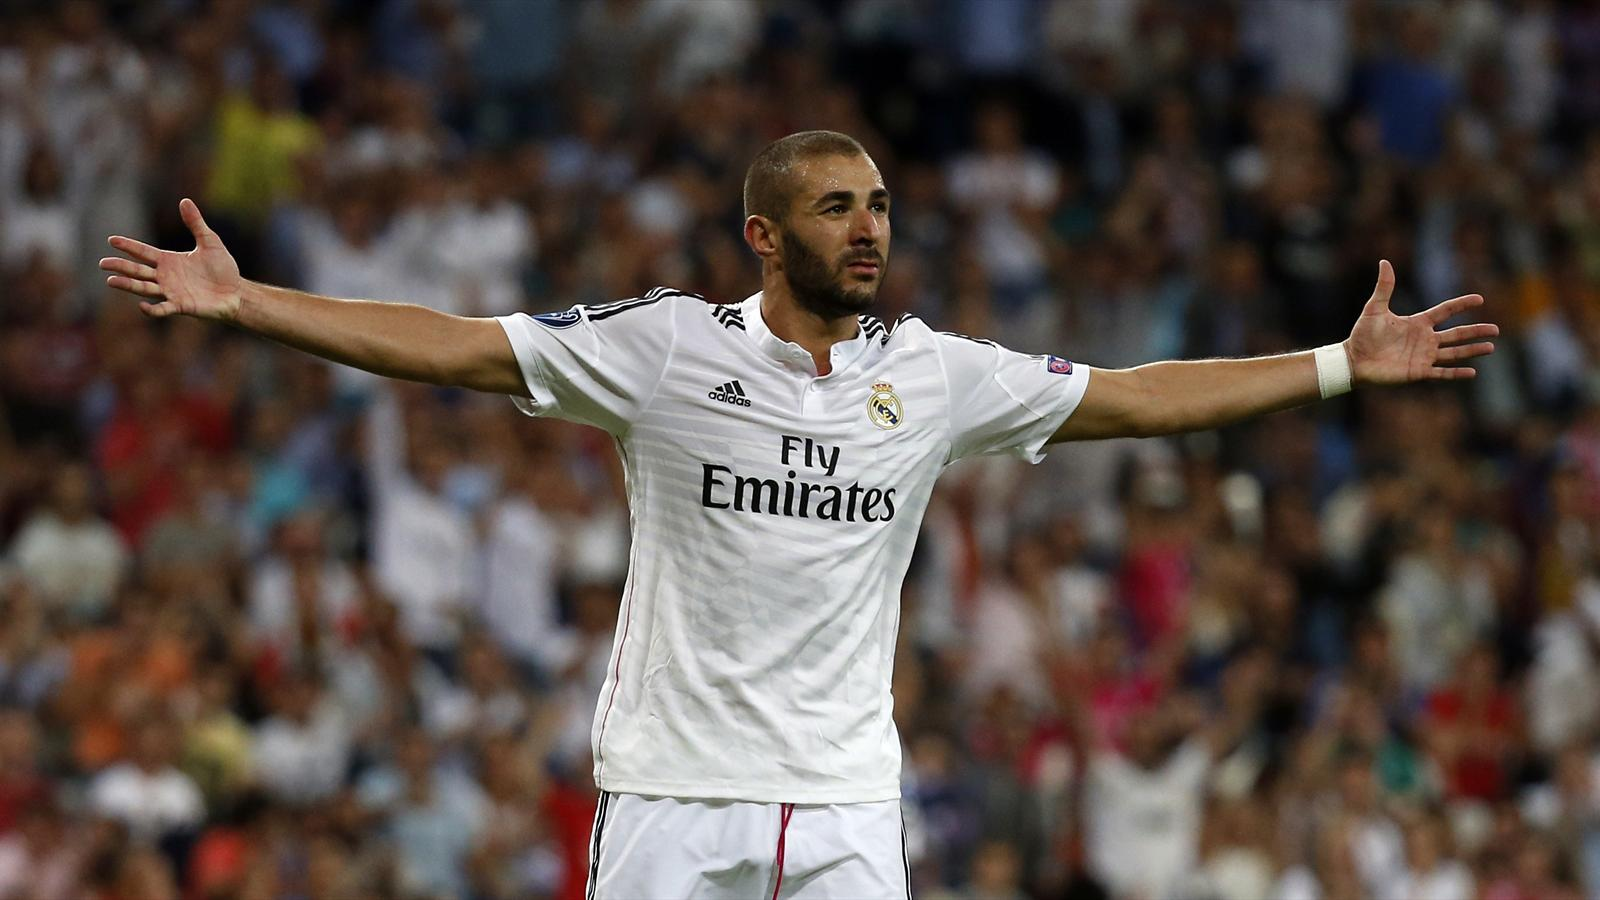 Karim Benzema: Real Madrid fans won't let me fail - Liga 2011-2012 - Football - Eurosport